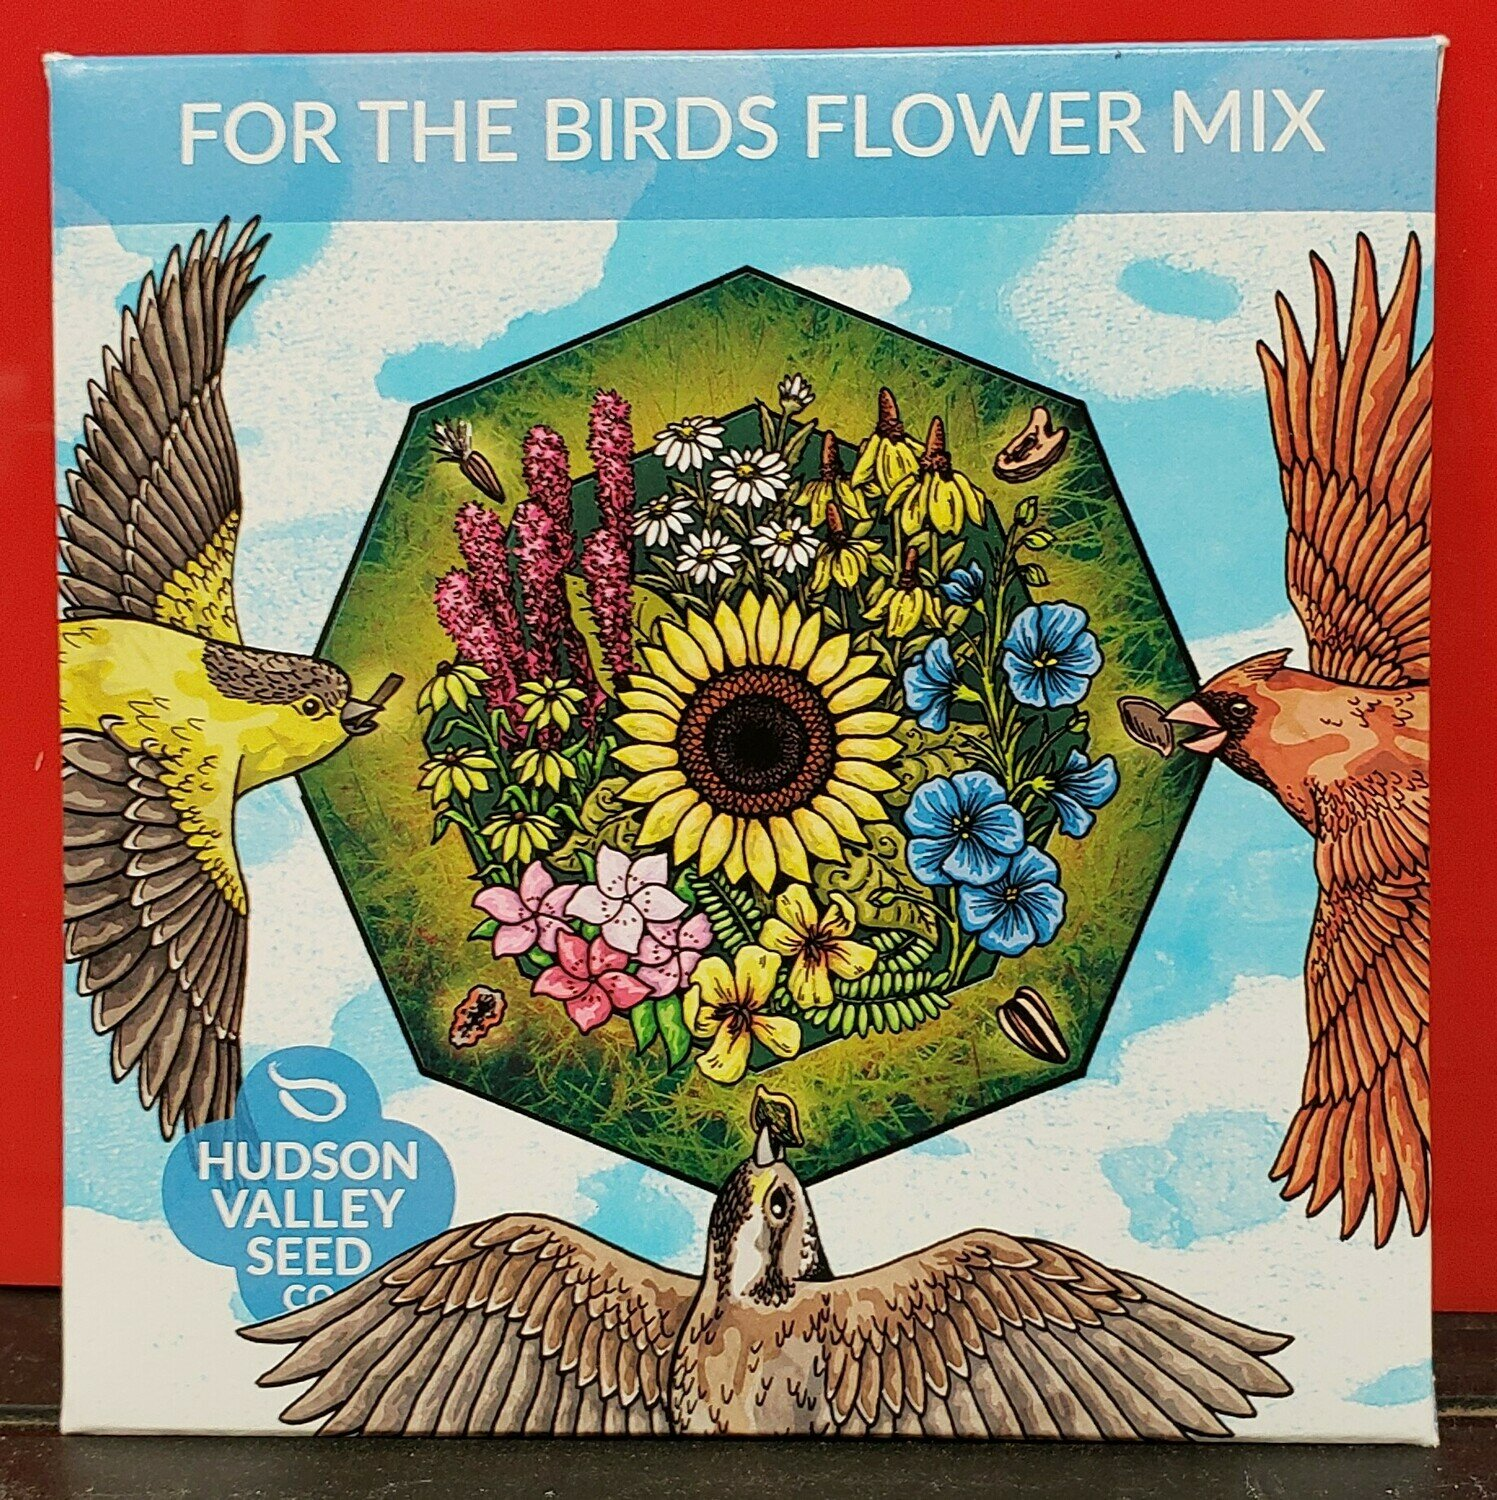 Art Pack Seeds: Flower Mix (For the Birds)